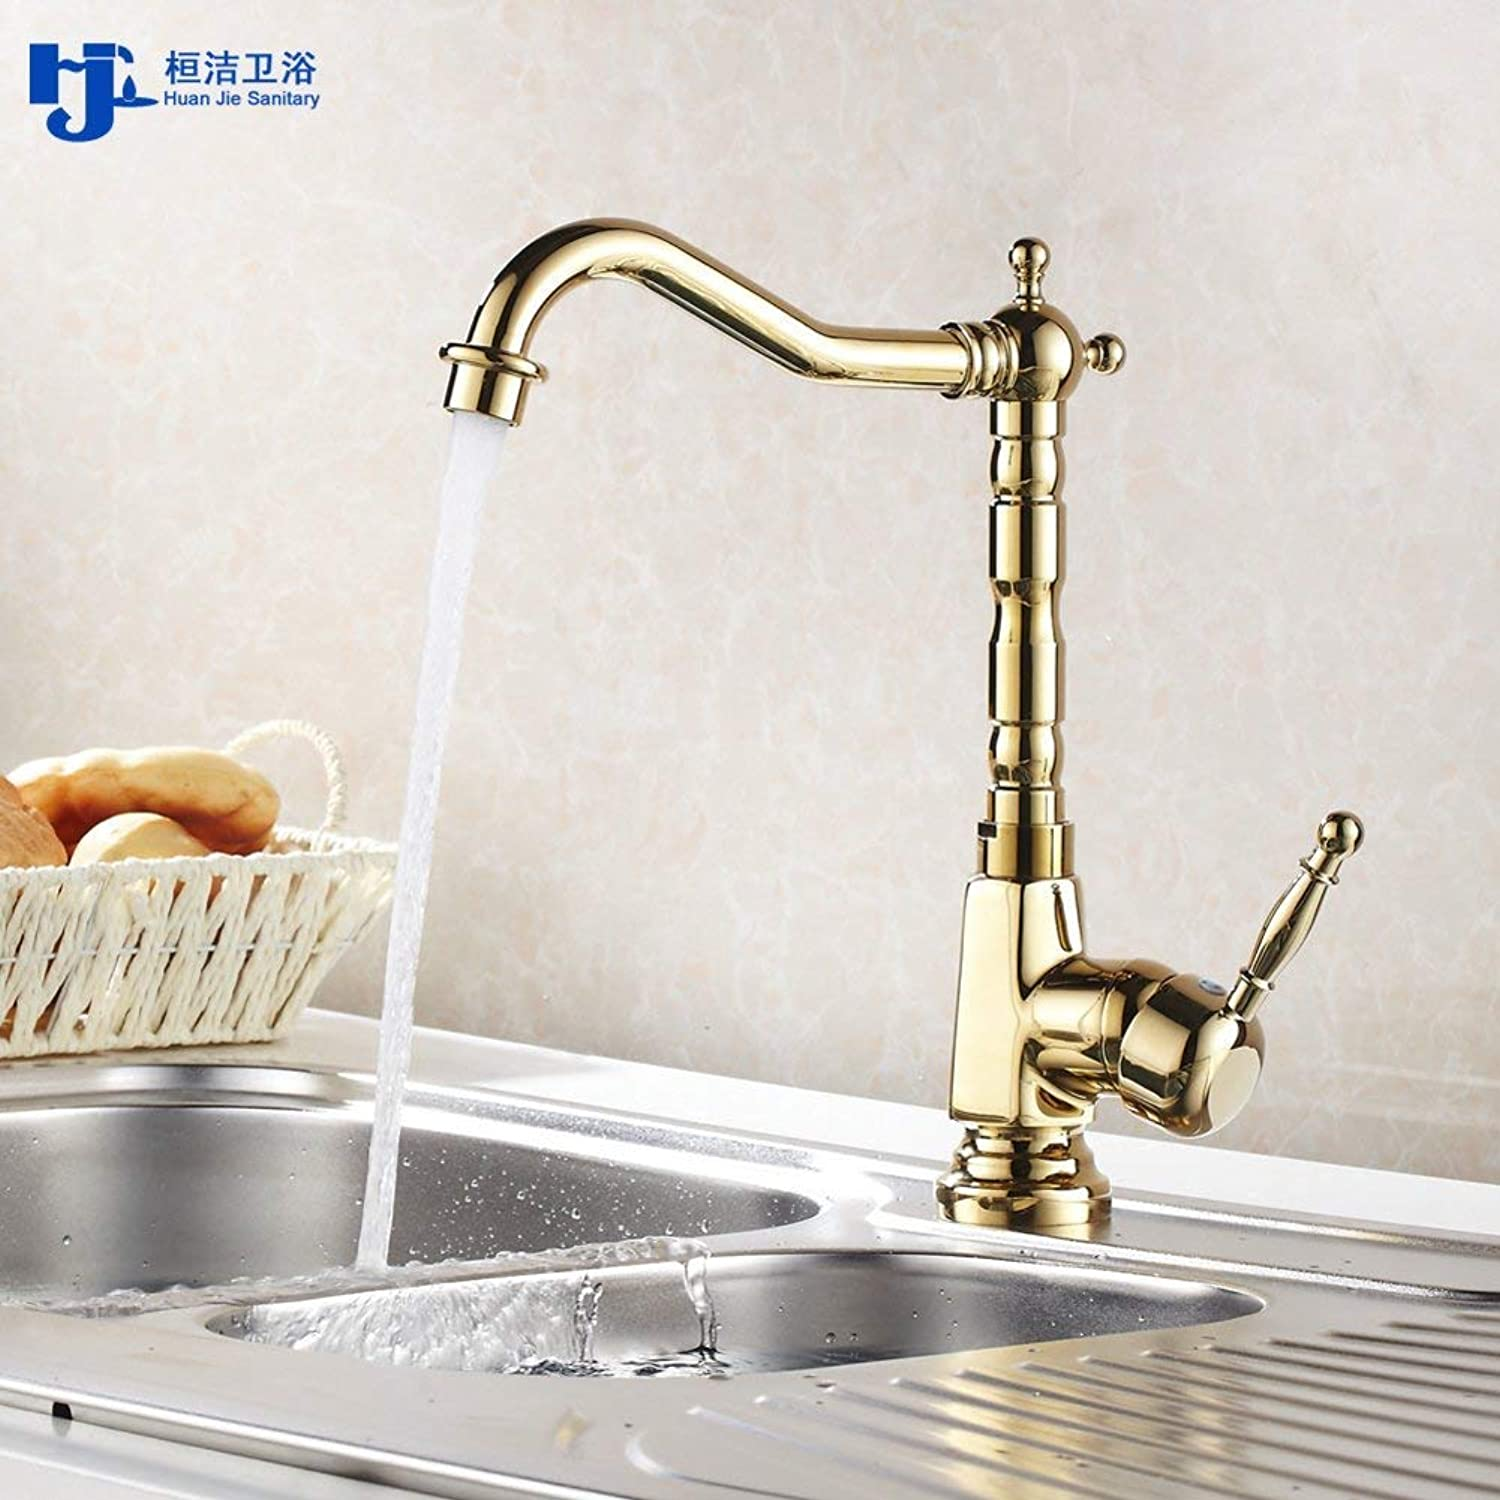 FuweiEncore Kitchen Faucet Vegetables basin faucet Tap both hot and cold (color   -, Size   -)